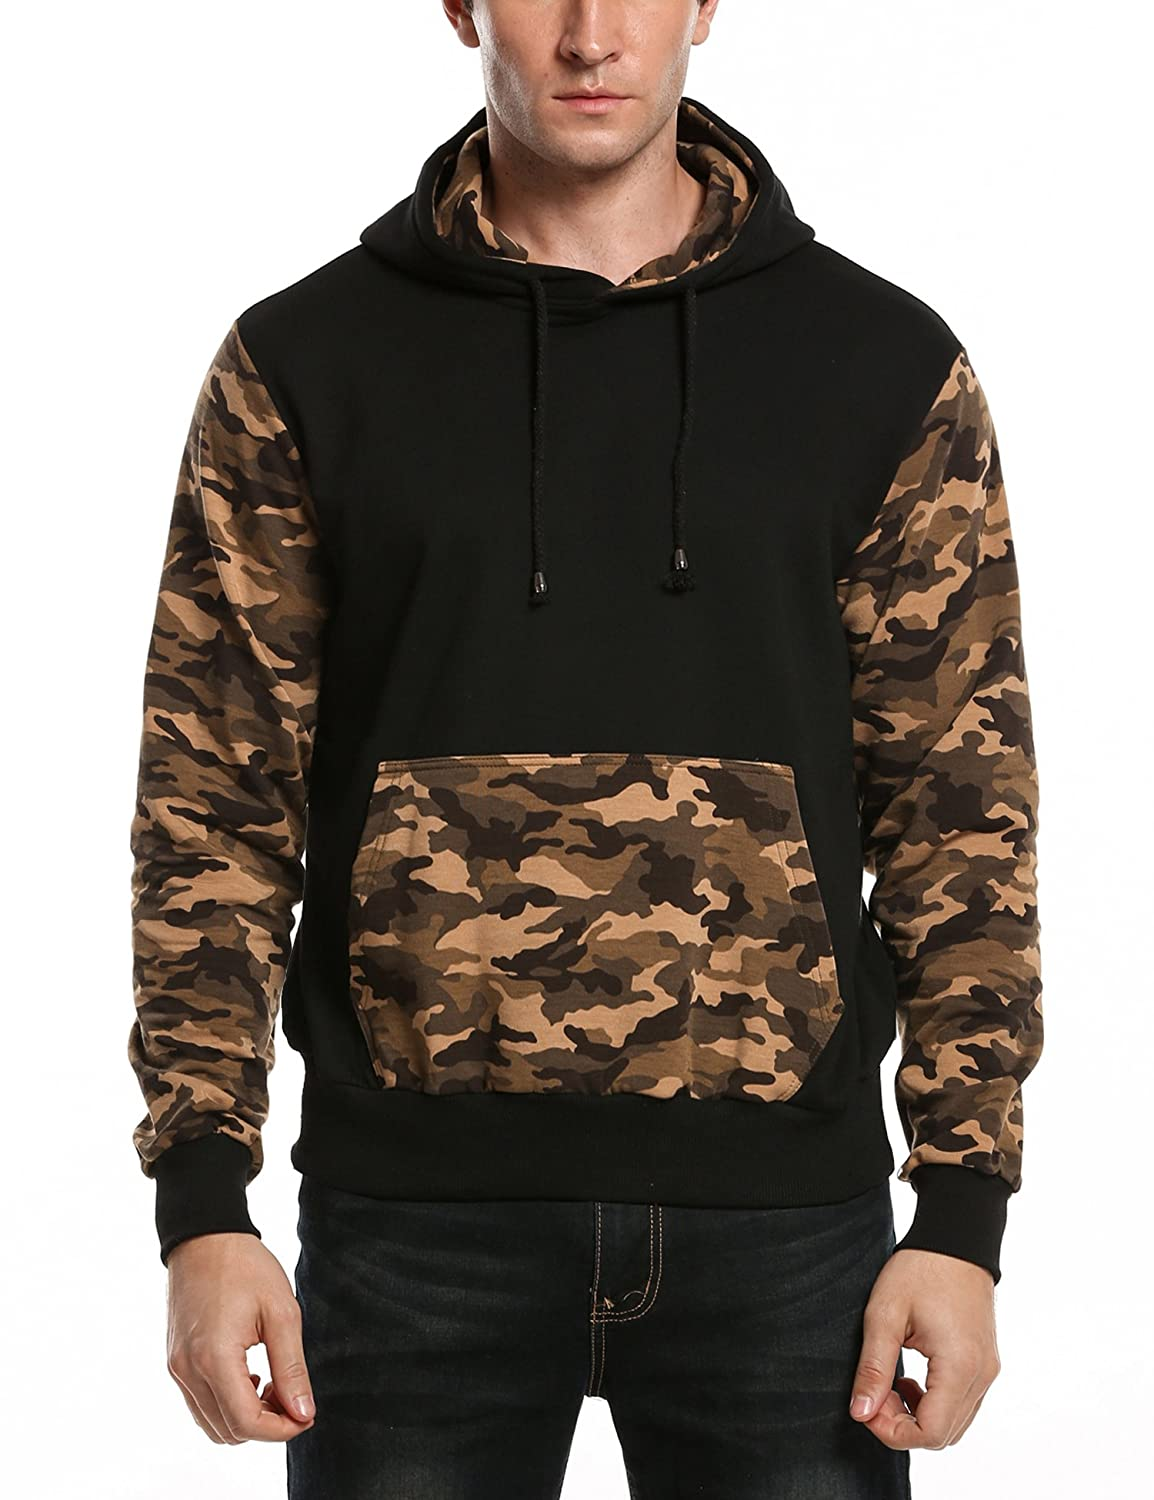 daf14d26faefc High quality camo hoodie,keep you feel warm,soft and comfortable from  mildly cold to very cold conditions. Functional design with a zipper pocket  on the ...